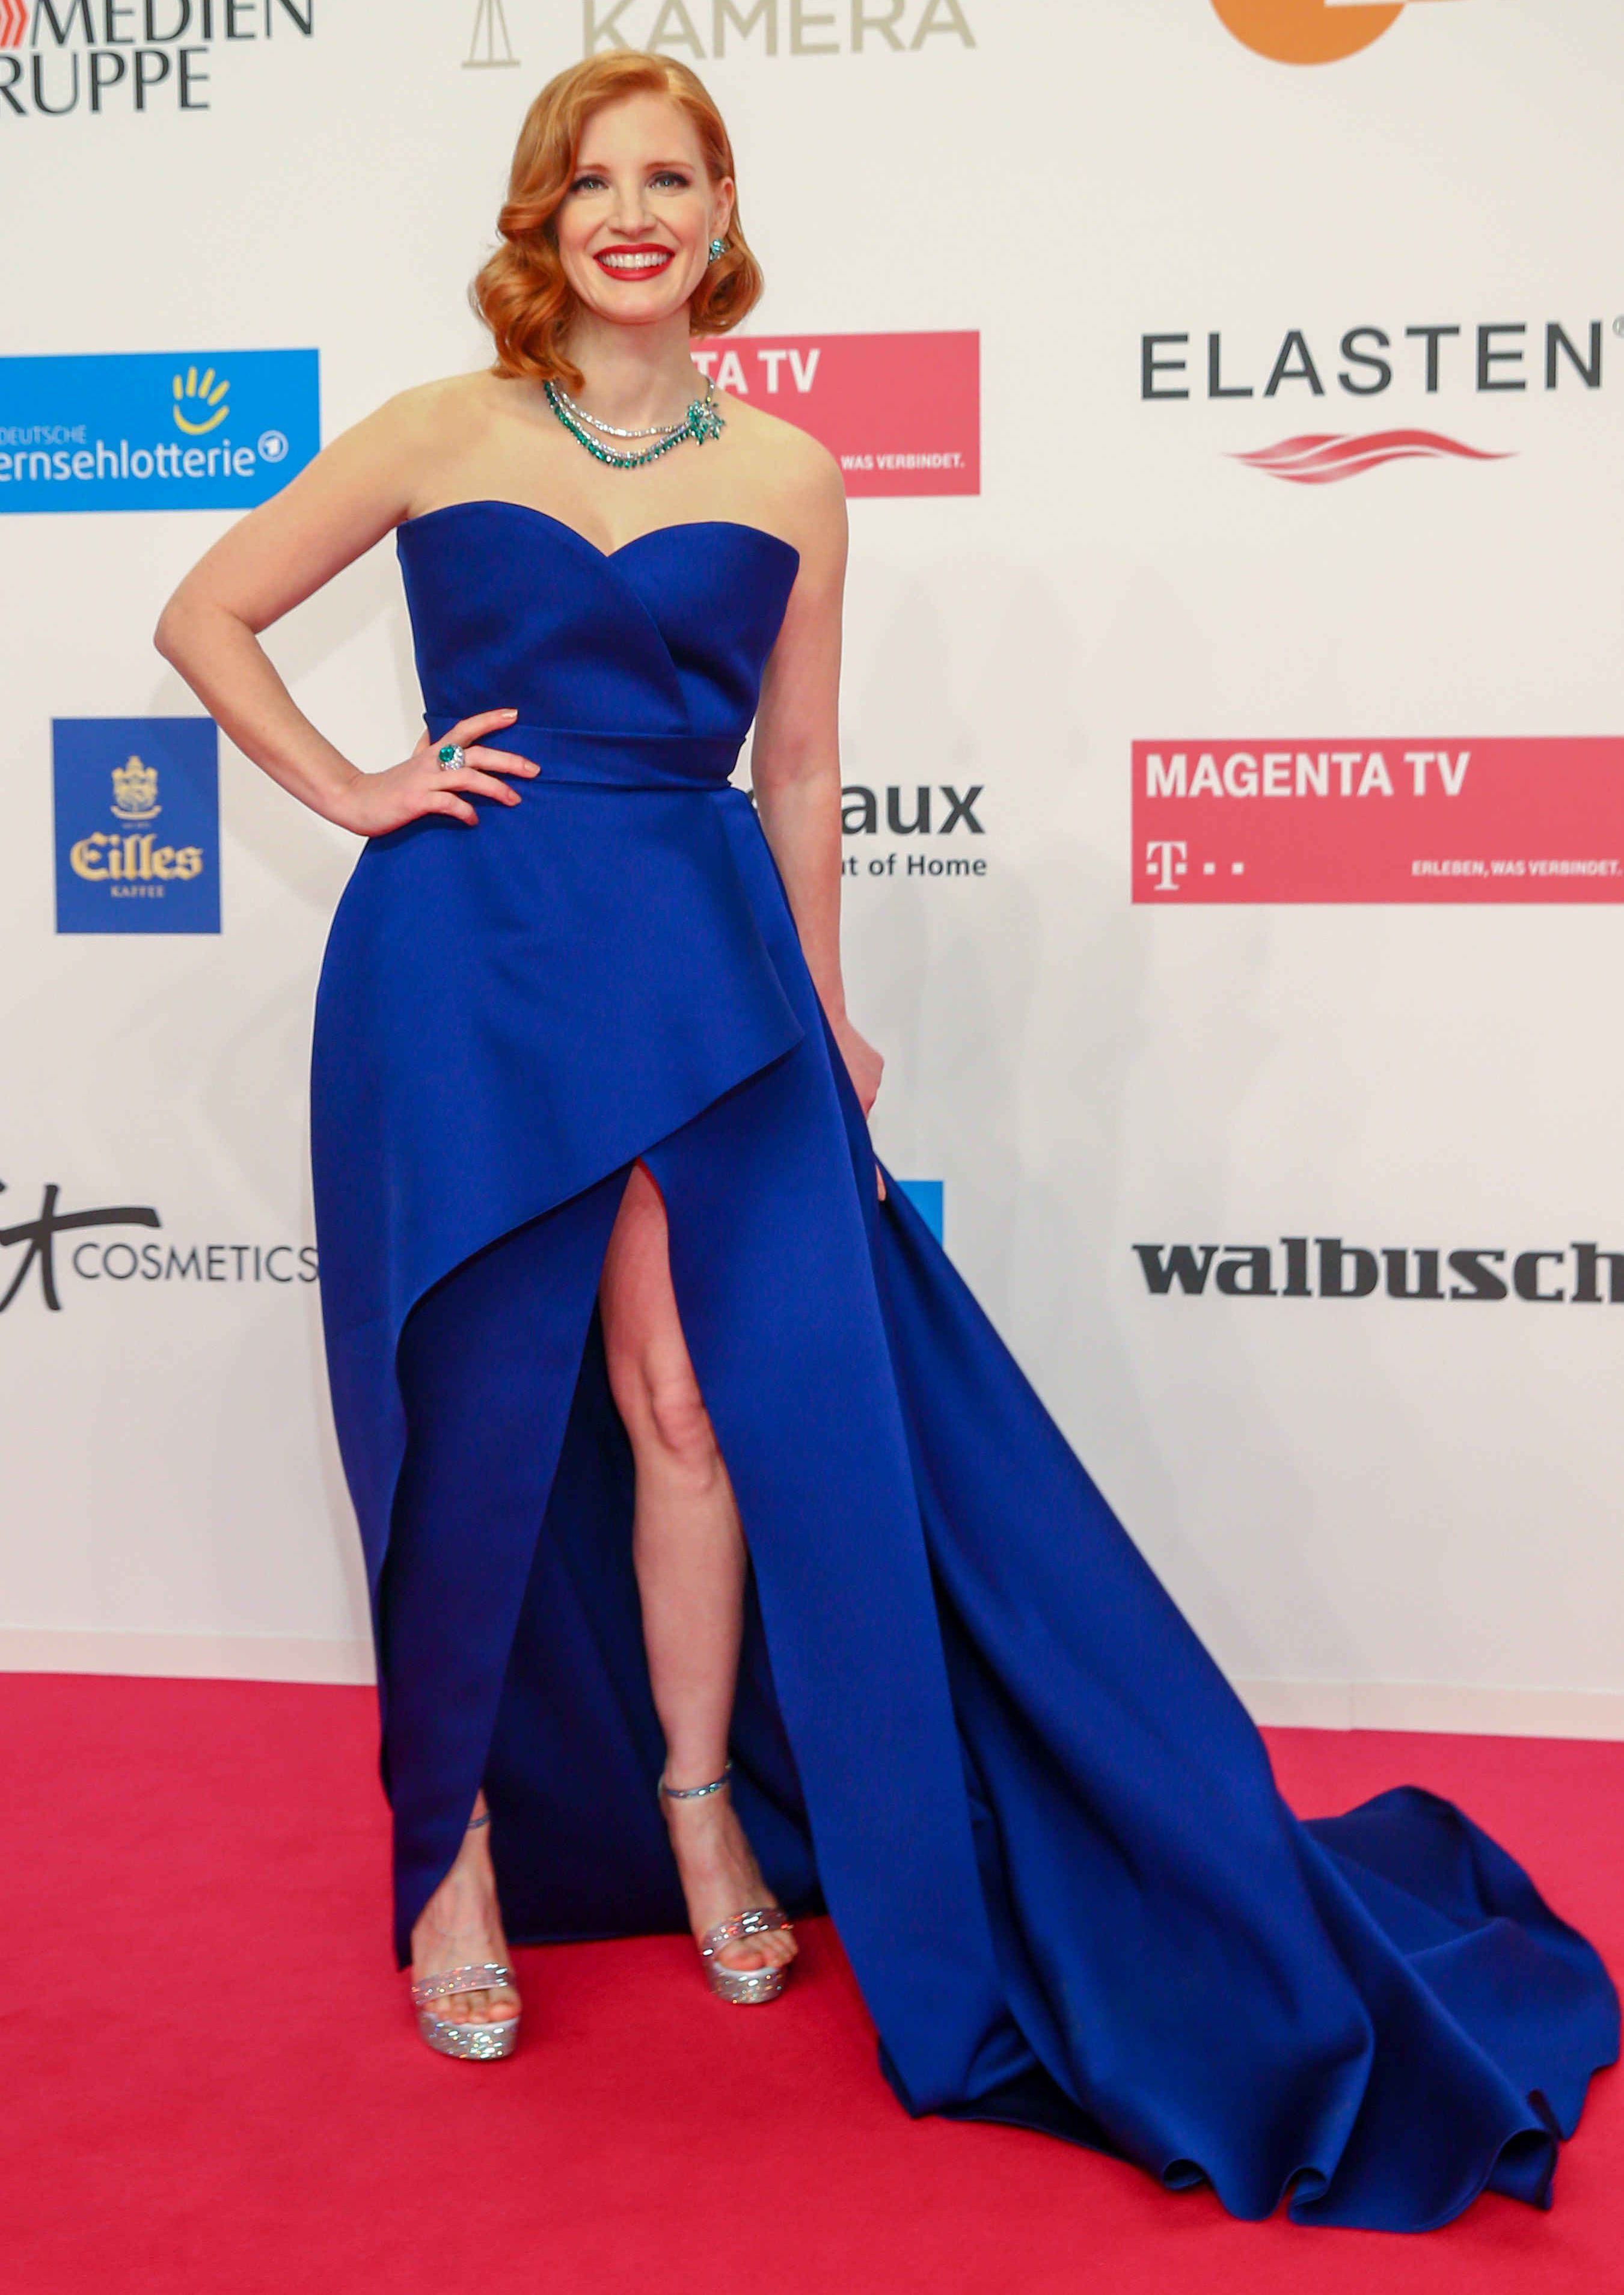 Jessica Chastain attends the Golden Camera Awards in Berlin, Germany, on March 30, 2019.